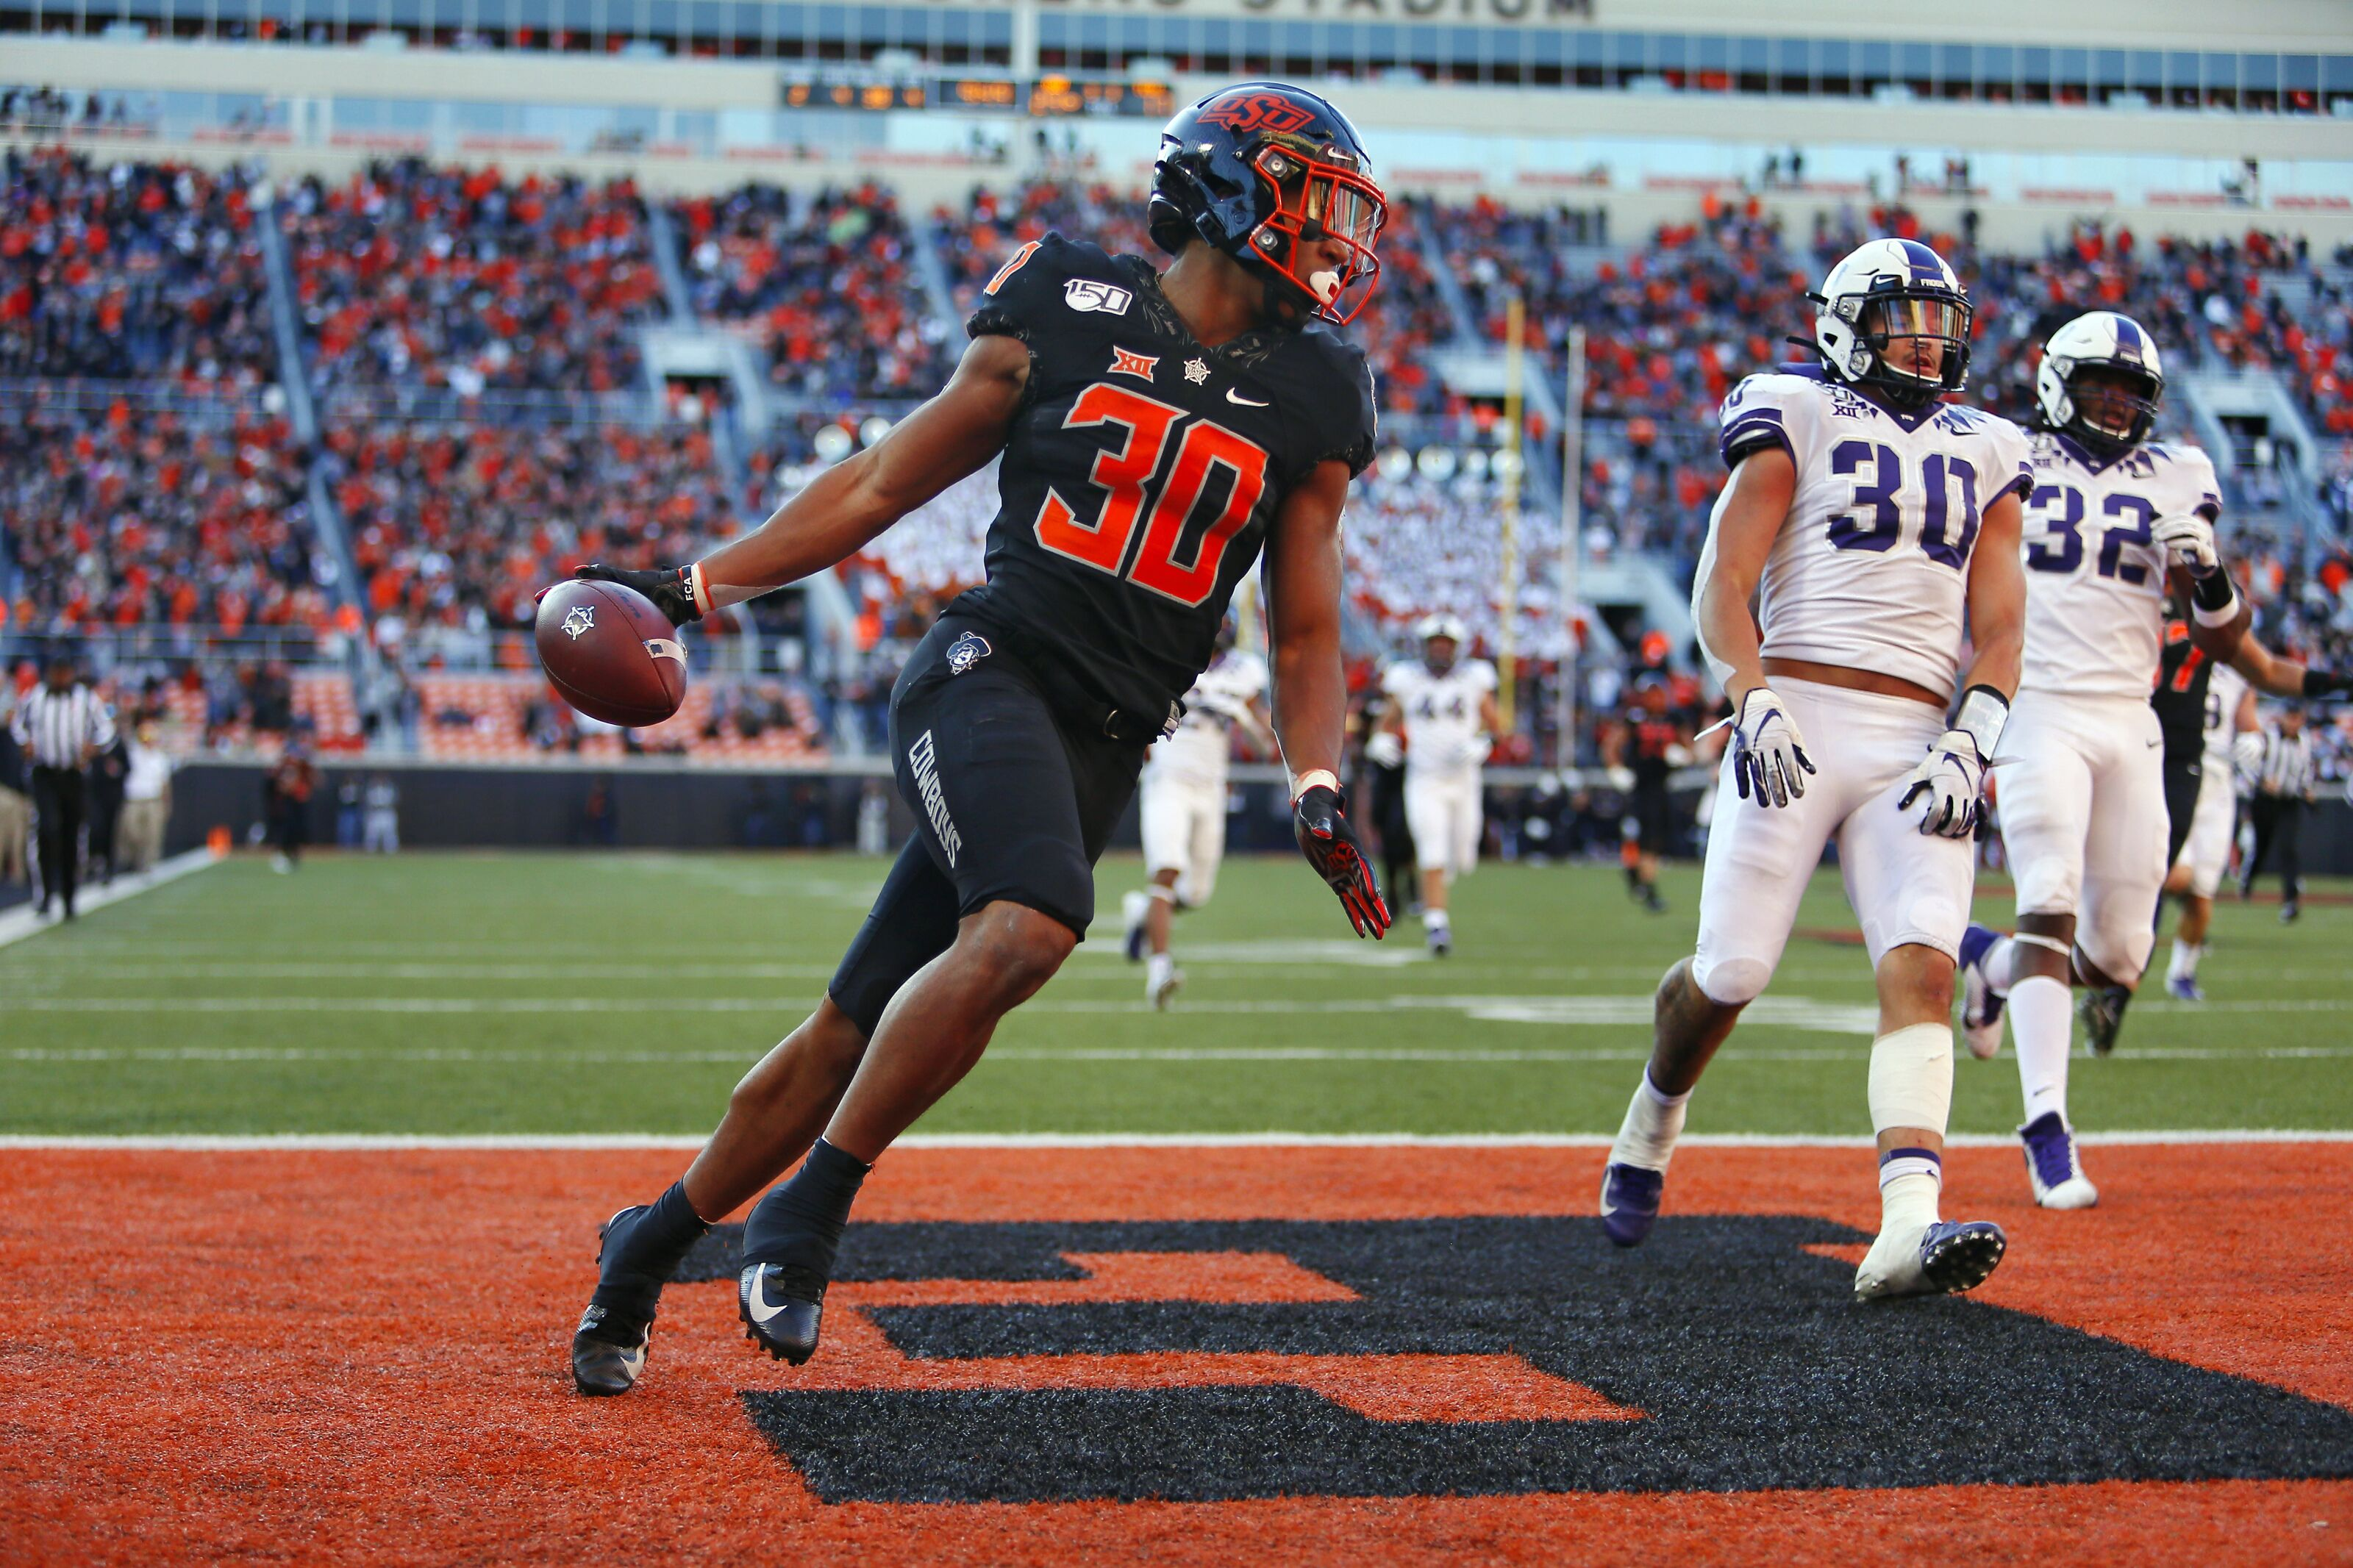 Oklahoma State Football: Return of Chuba Hubbard could yield Big 12 title